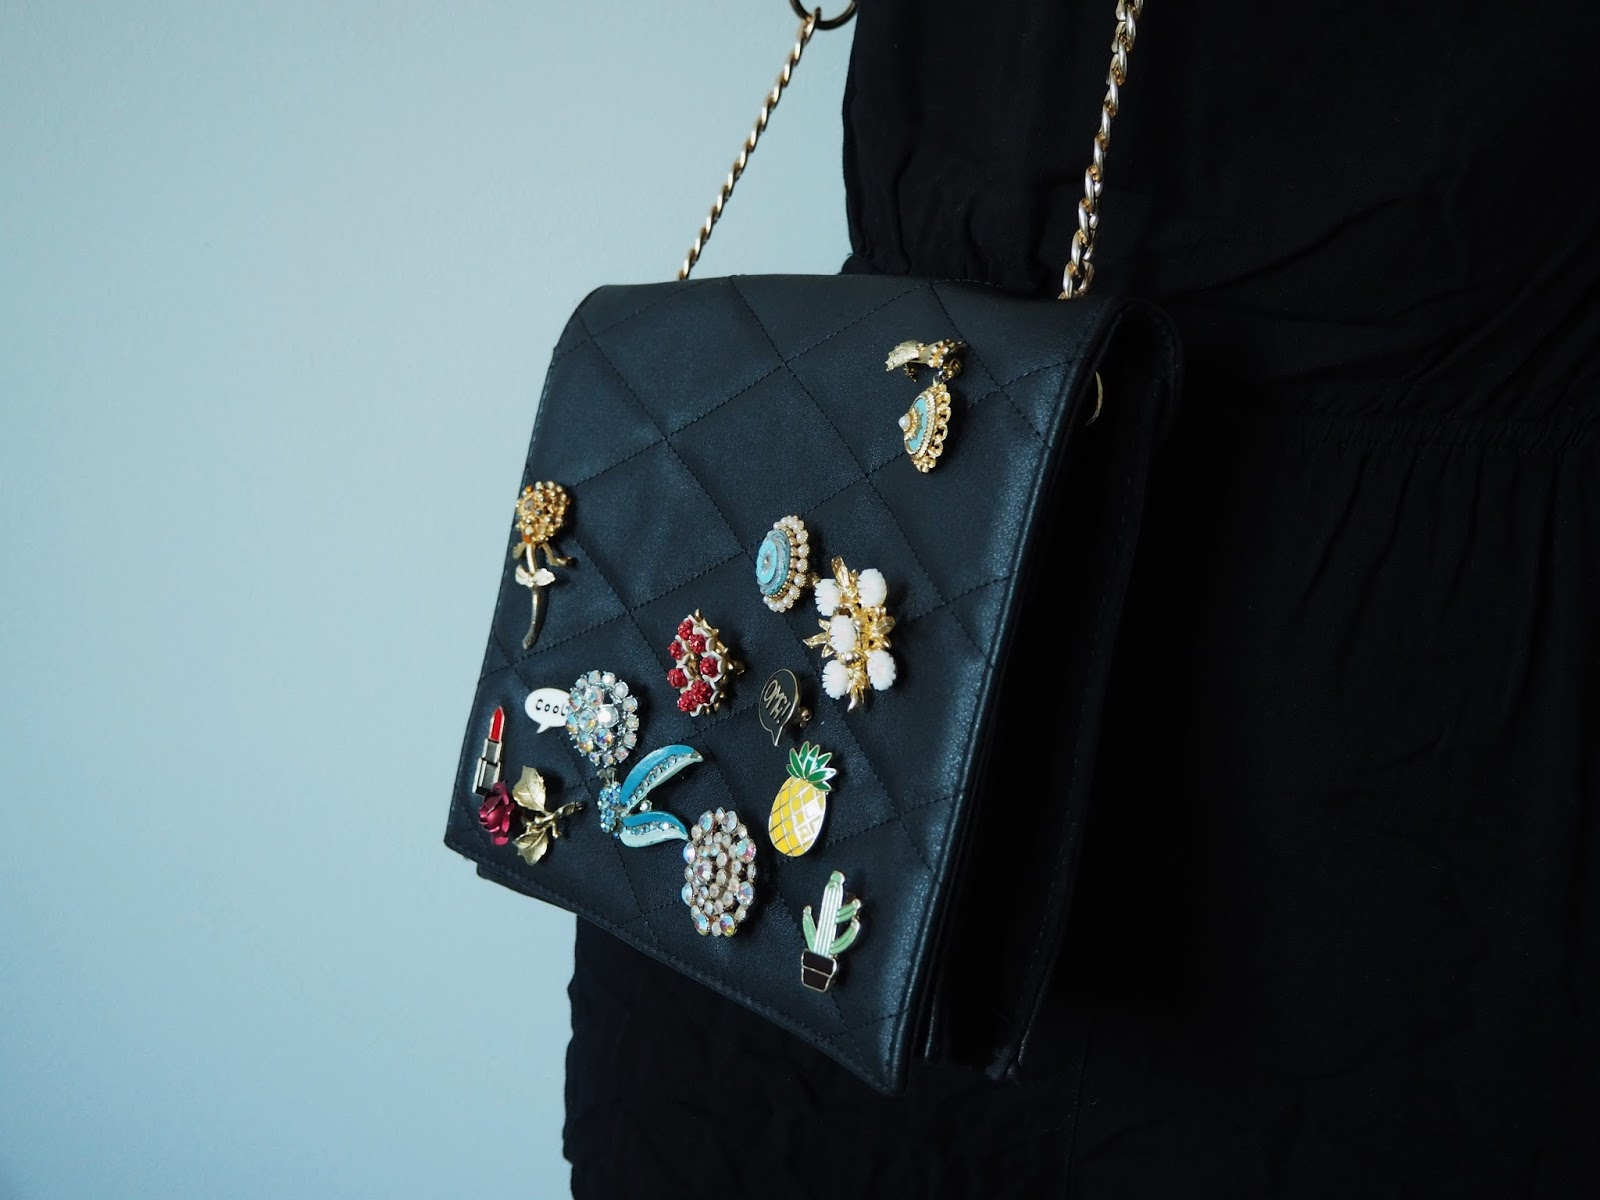 the turquoise door : DIY badgepin Bag for a fraction of the